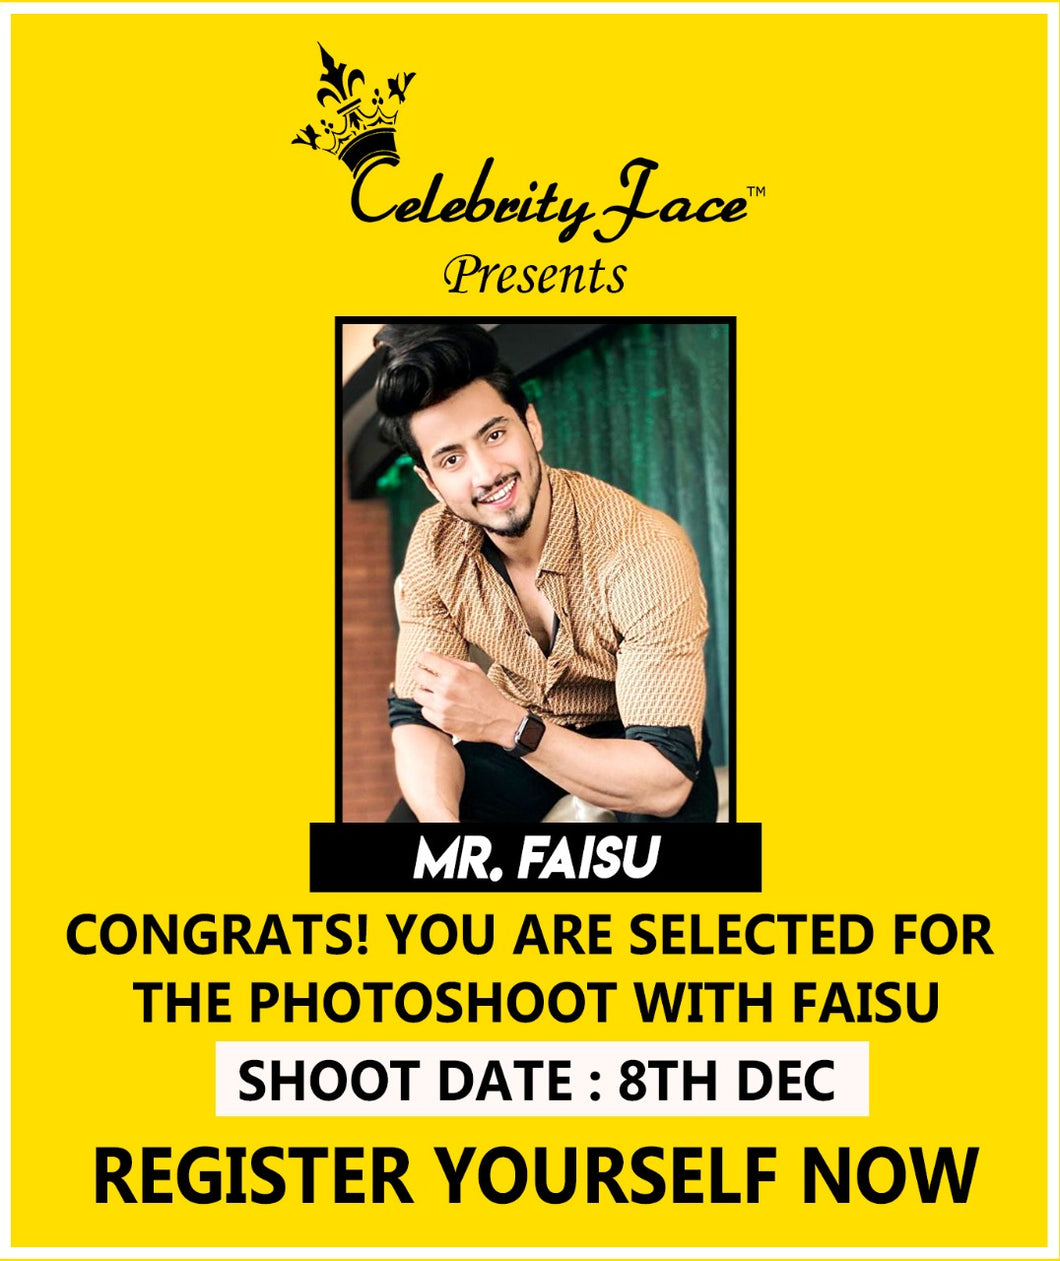 Register Your PhotoShoot with TikTok Star Mr. Faisu at Celebrity Face